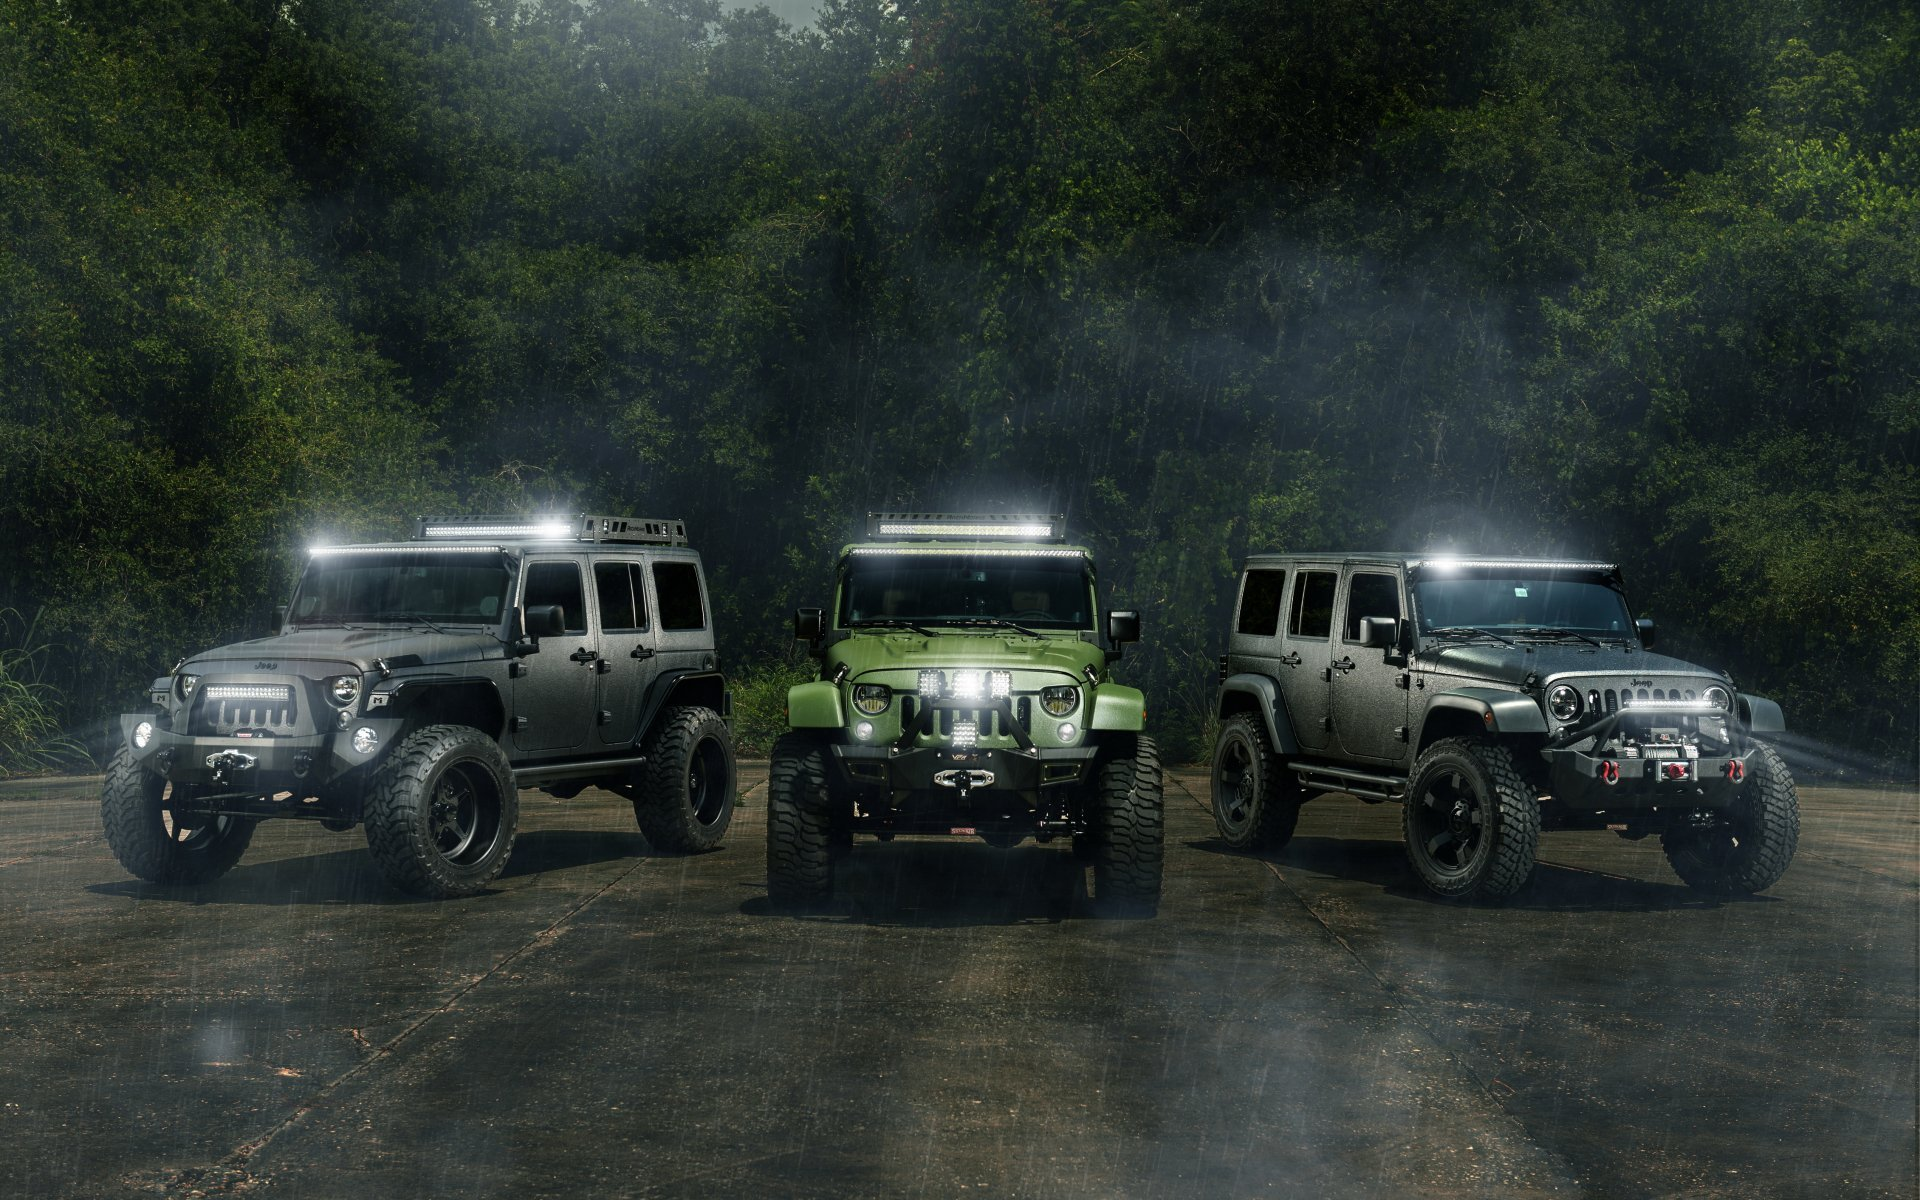 Jeep Wrangler Wallpapers and Background Images   stmednet 1920x1200